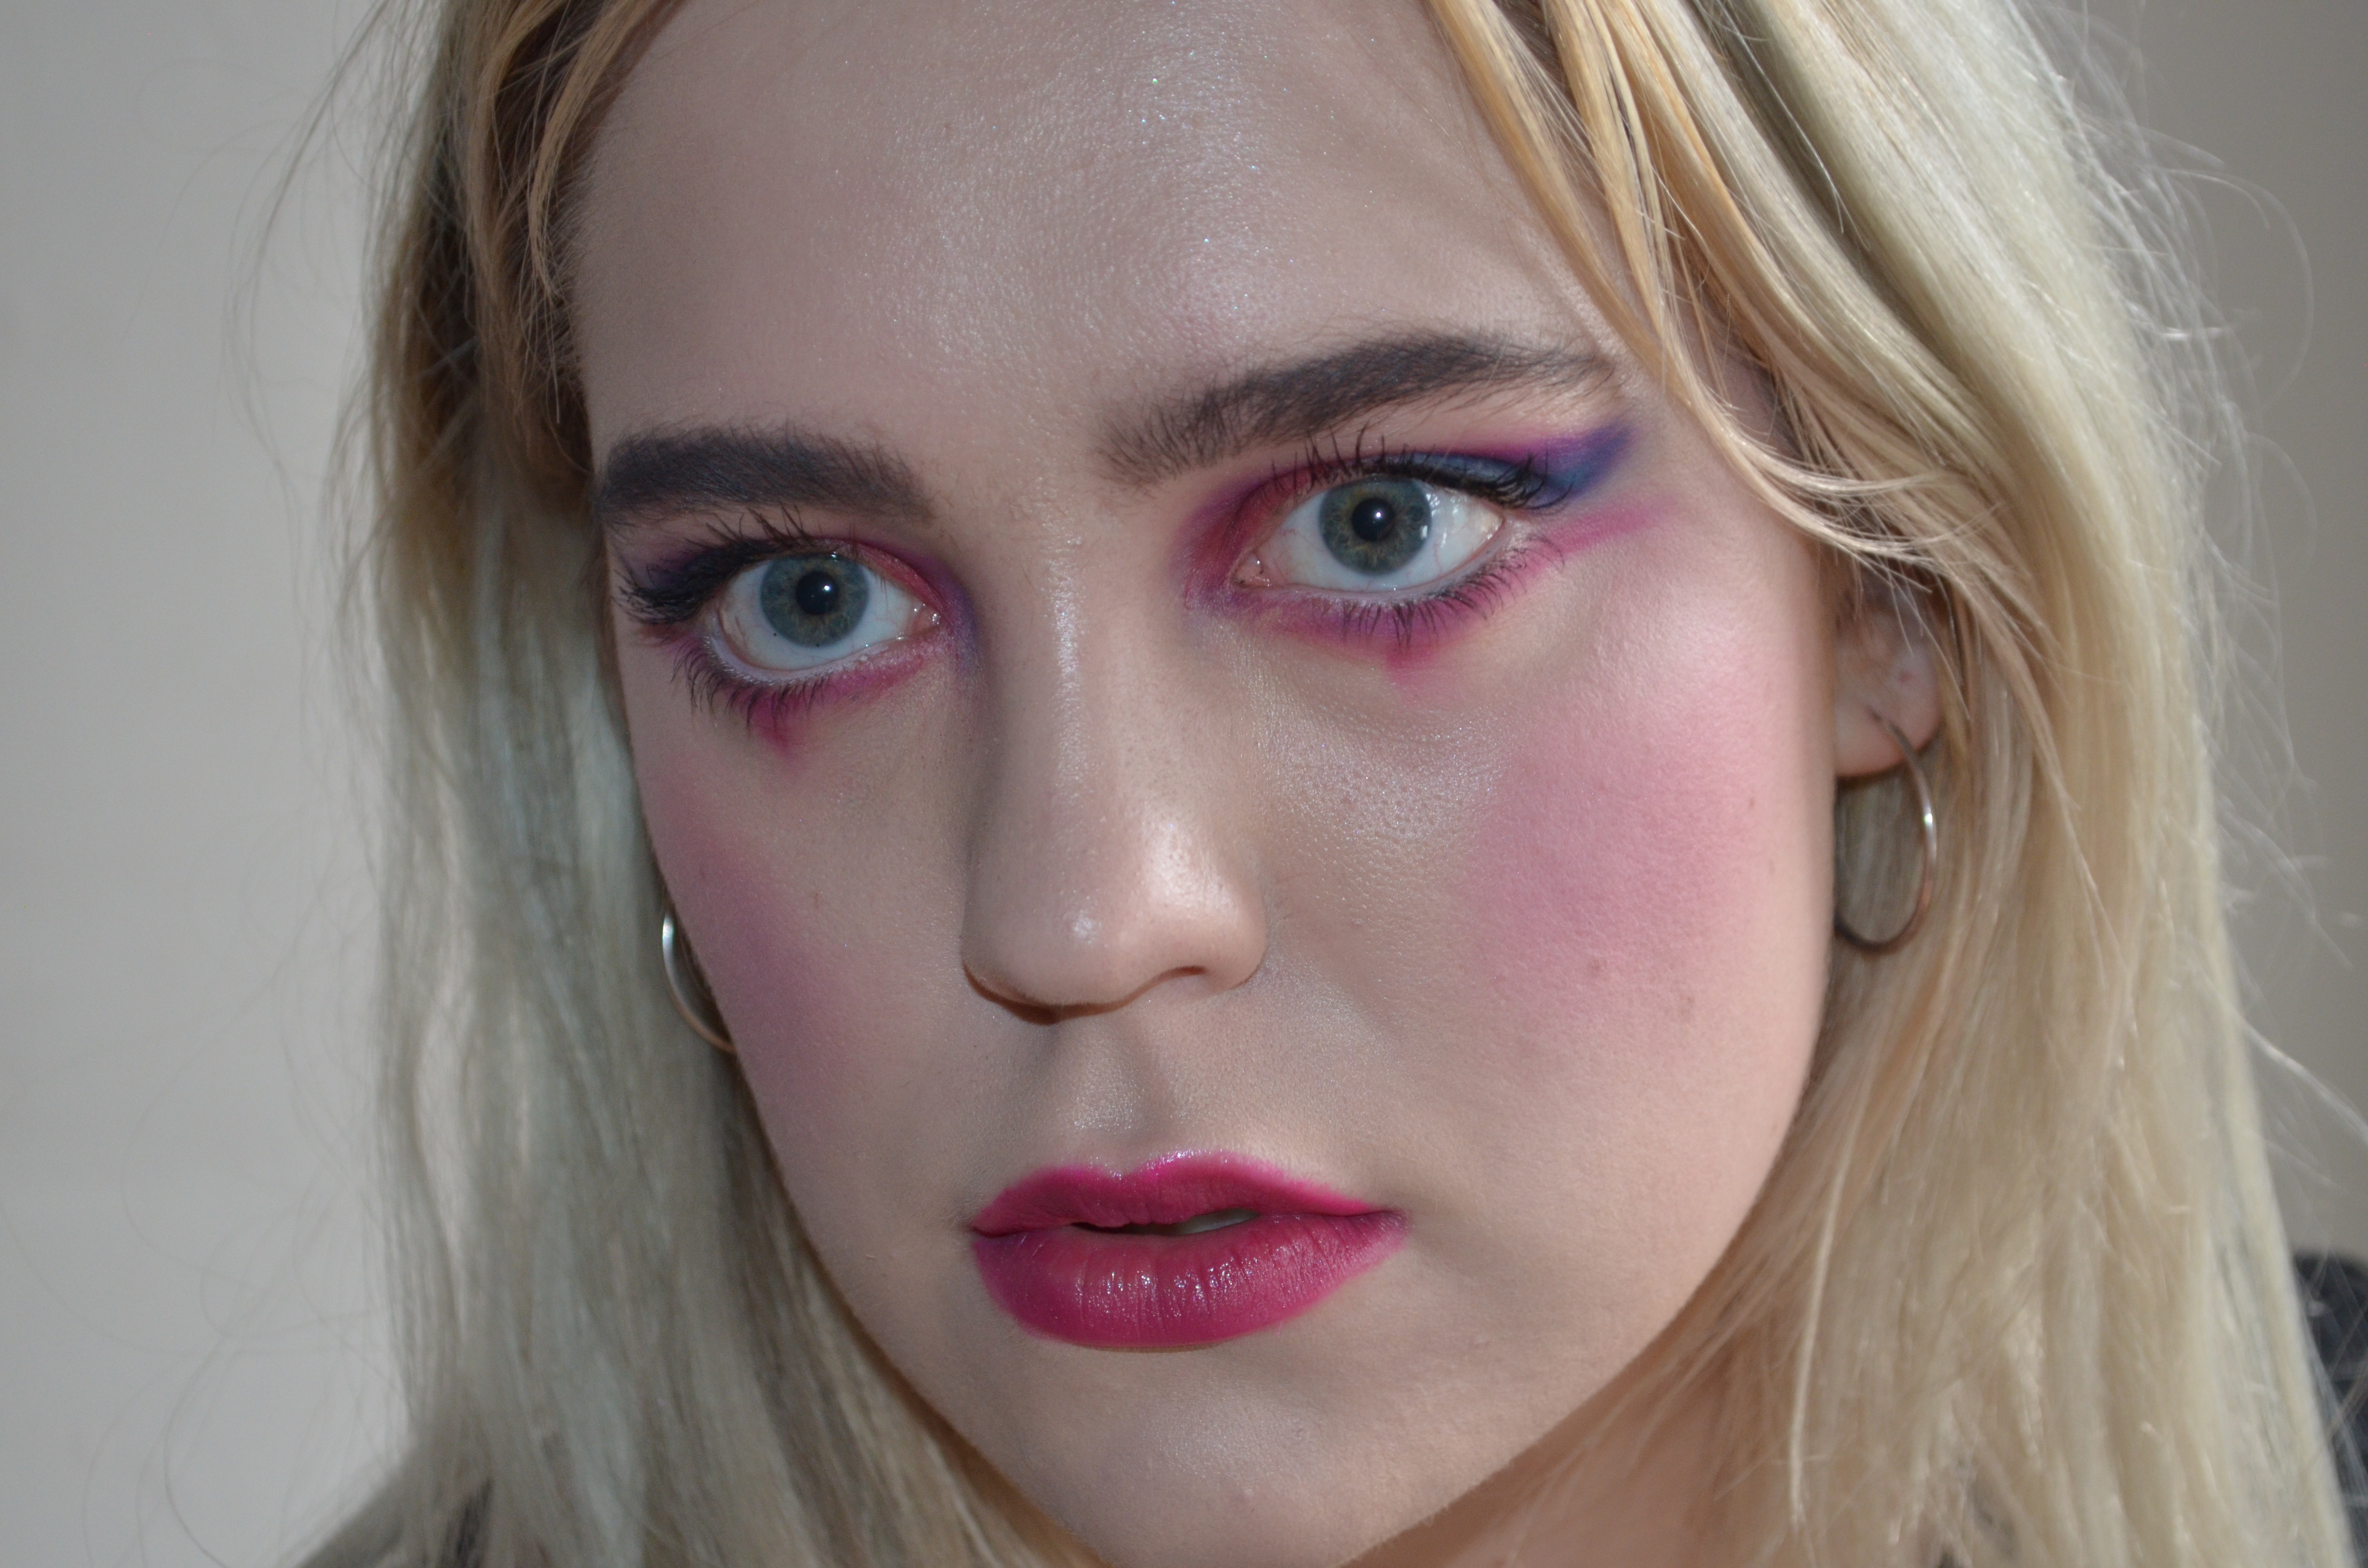 Here's how to get a clown-inspired makeup look that you'll actually want to wear out